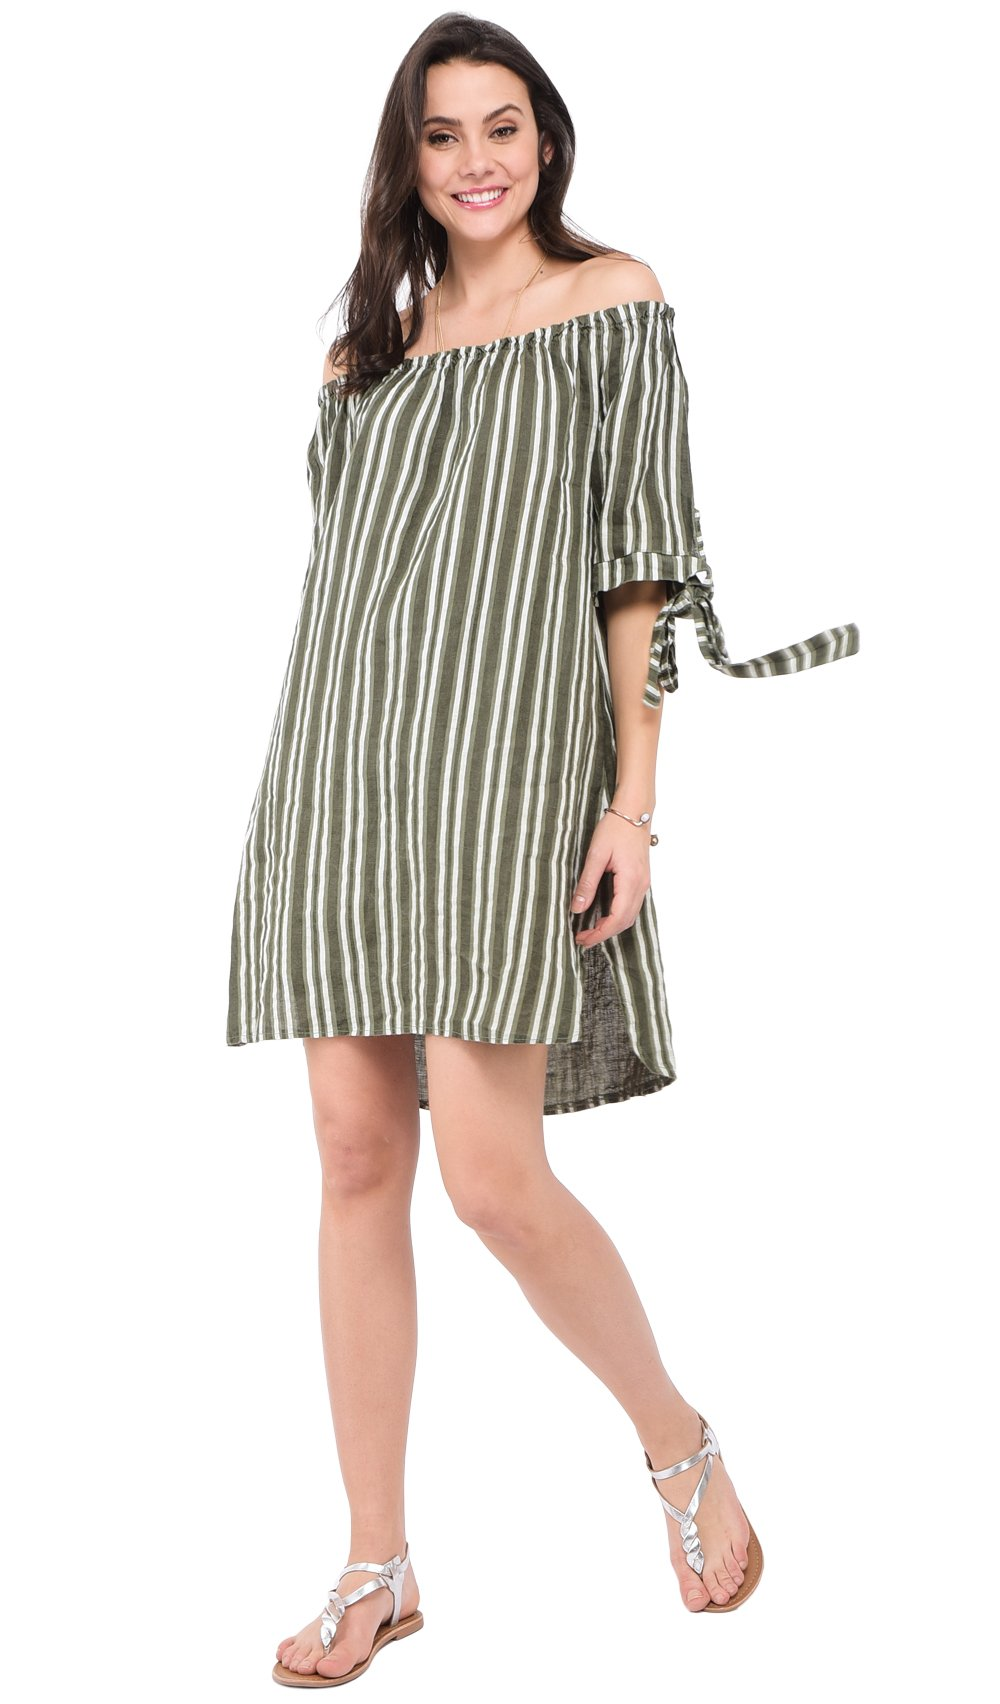 SHORT STRIPPED DRESS WITH BOAT COLLAR AND KNOTTED HALF-SLEEVES